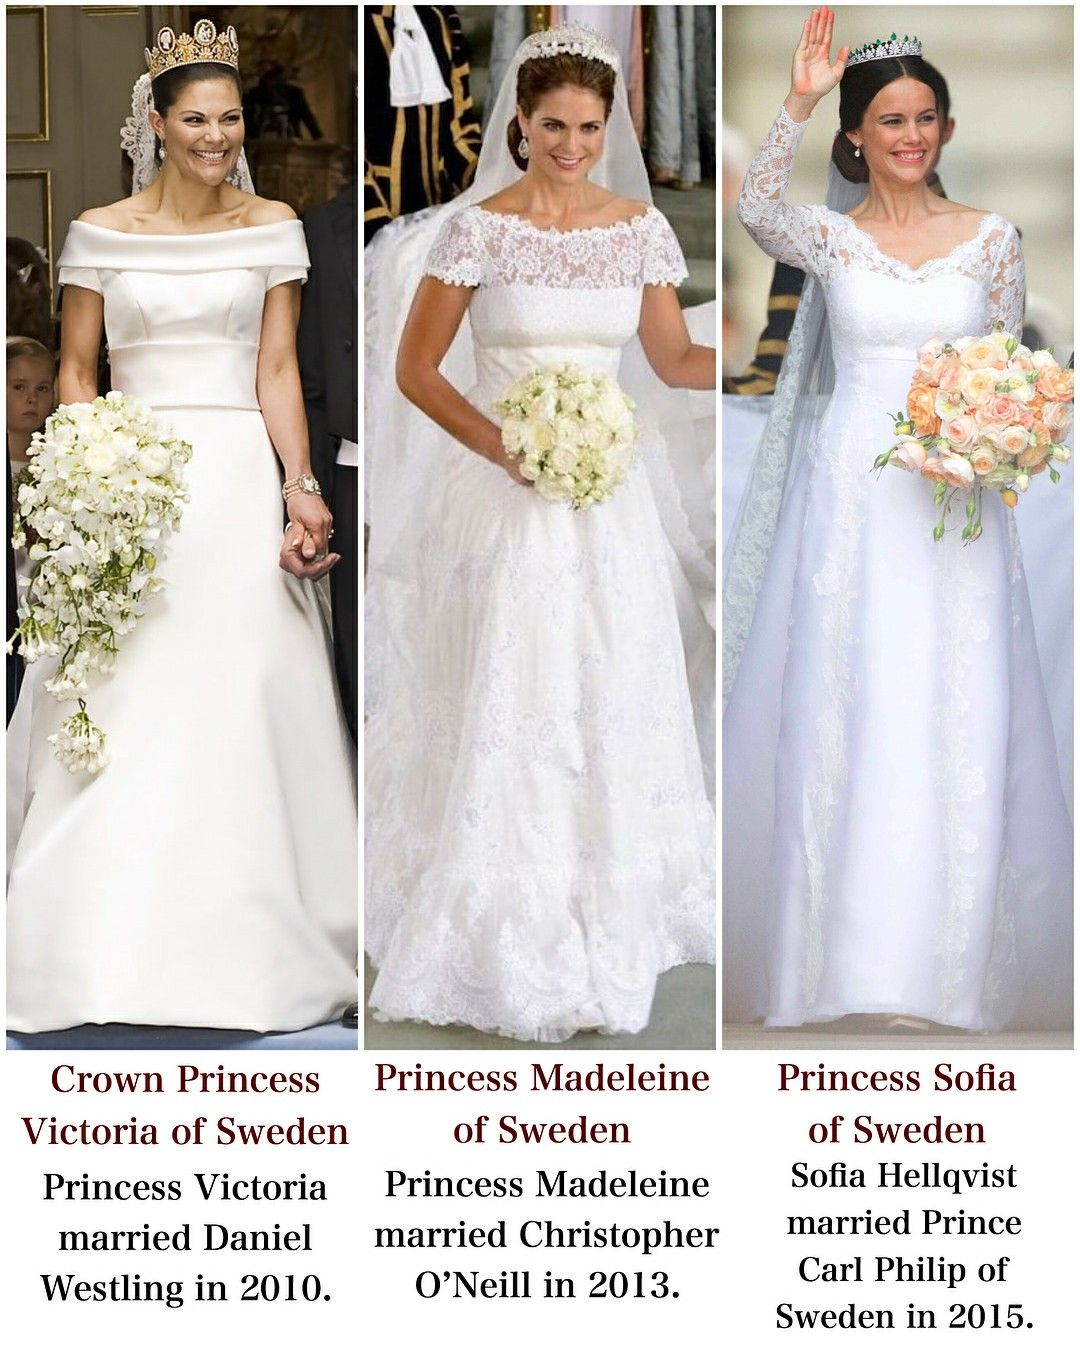 Pin By Cande Tinsley On Royal Brides European Wedding Dresses Royal Brides Royal Weddings [ 1370 x 1080 Pixel ]